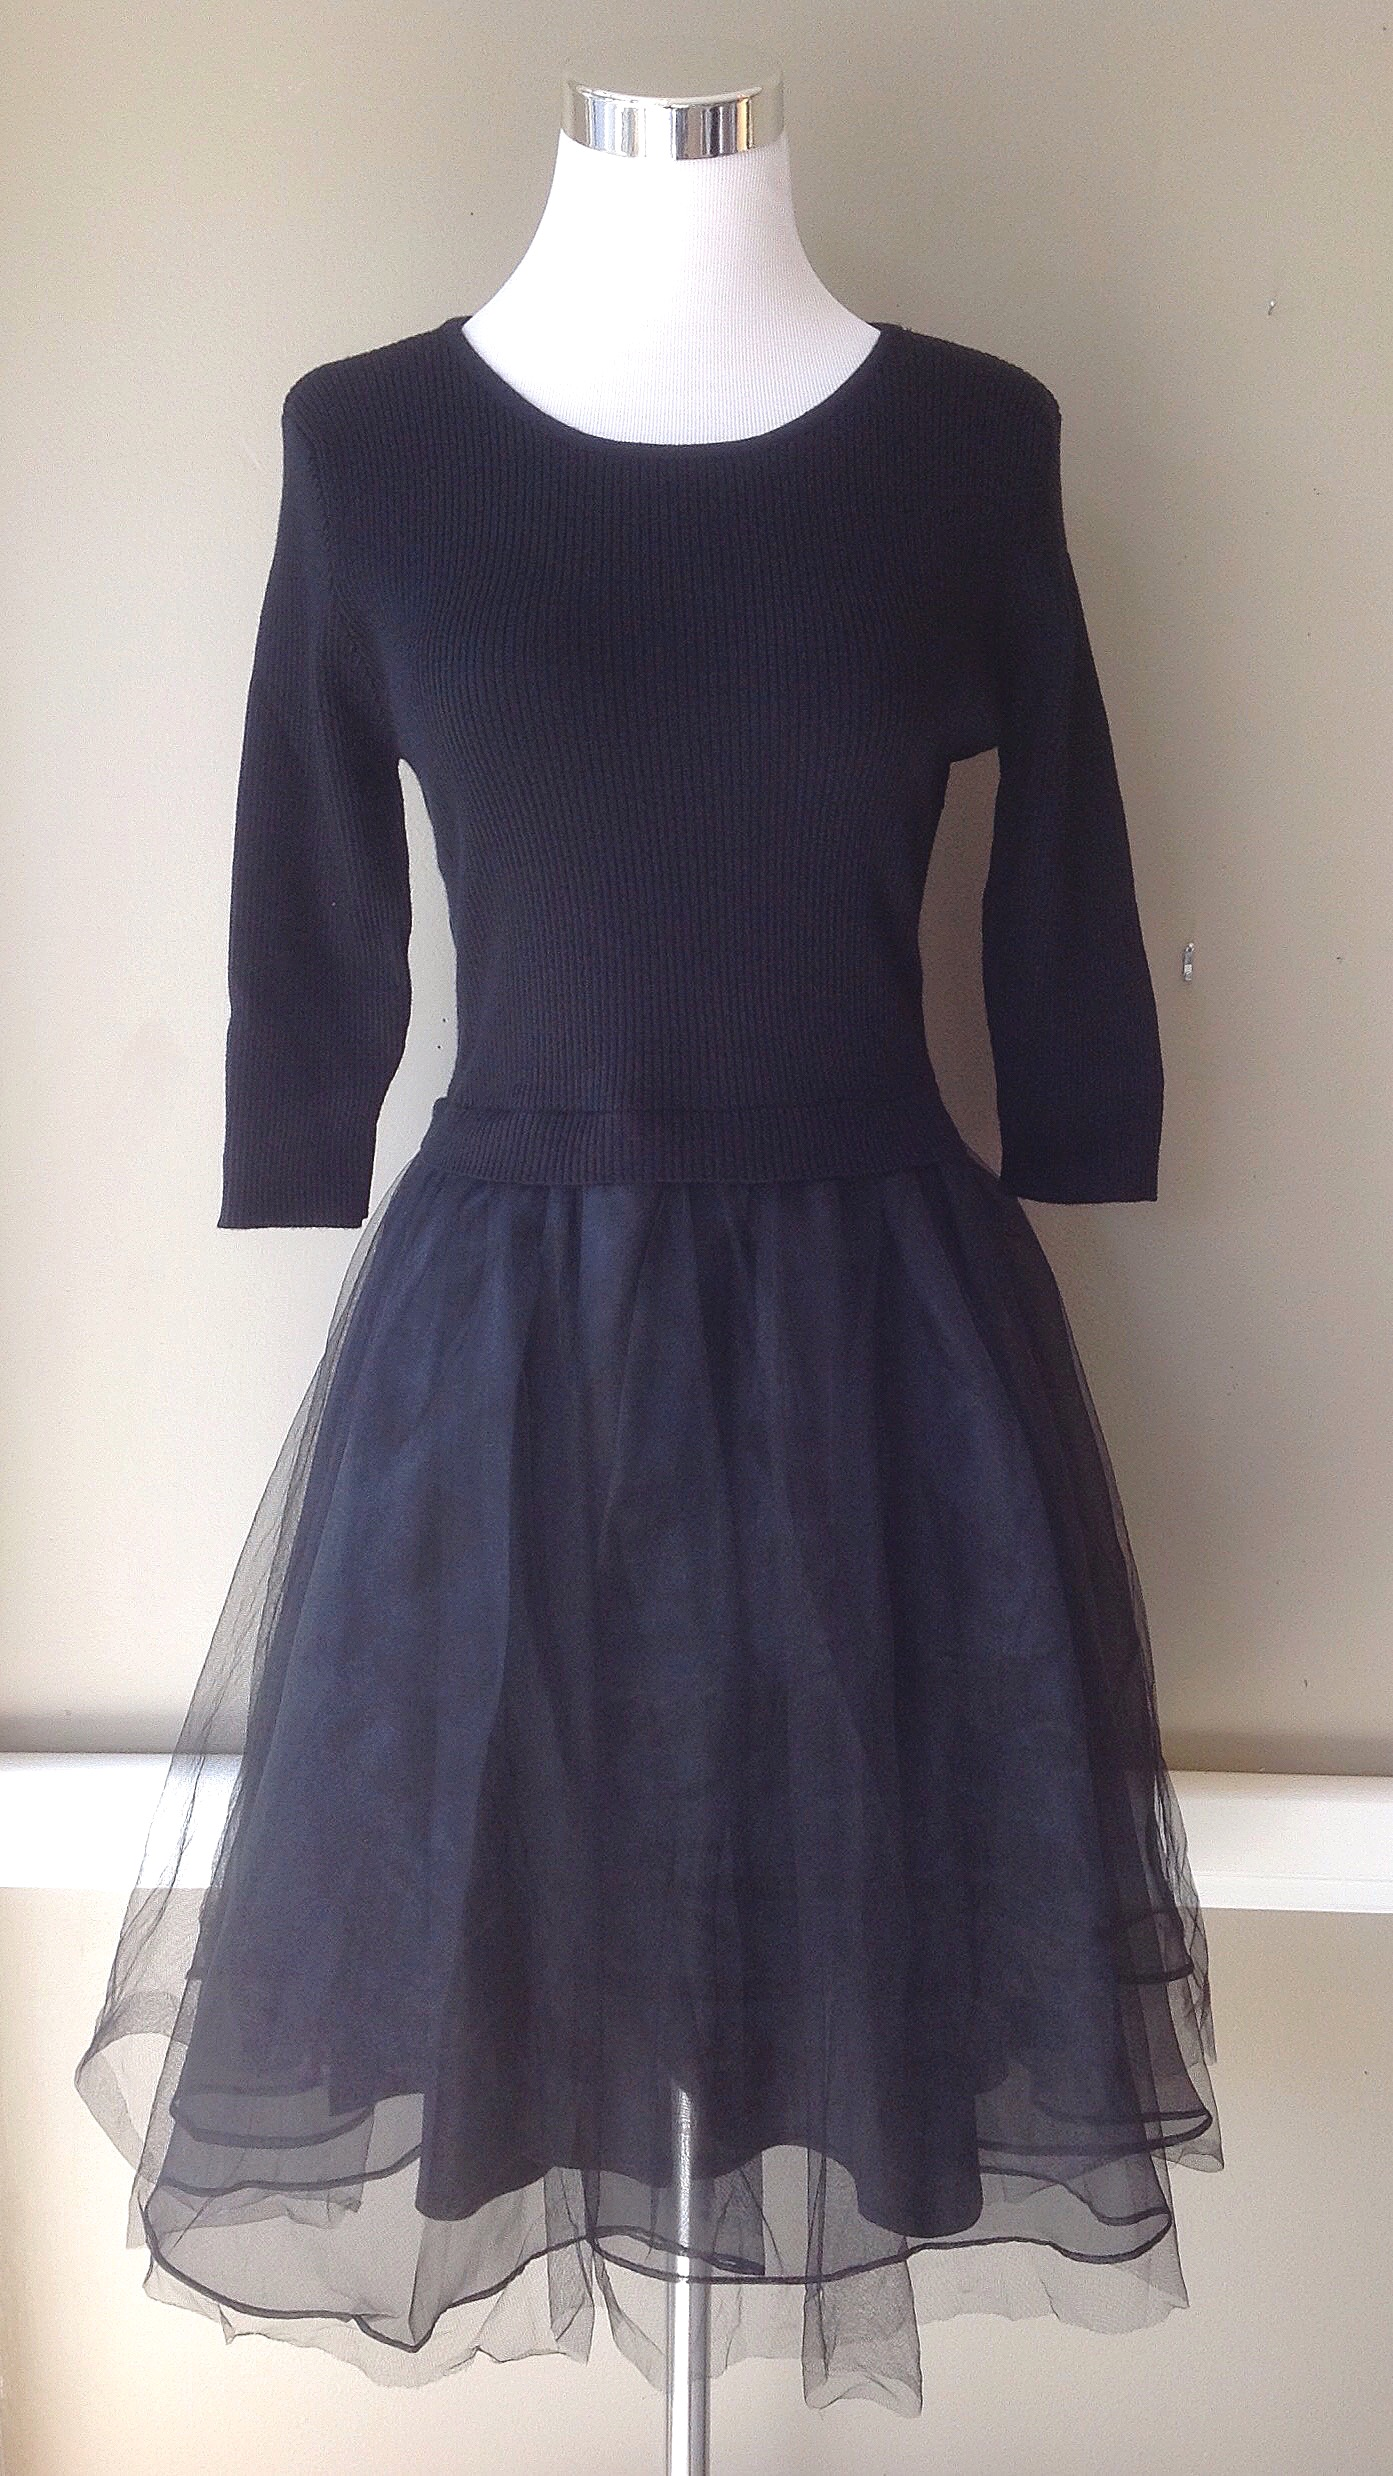 Black party dress with knit bodice, and tulle and chiffon skirt, $64